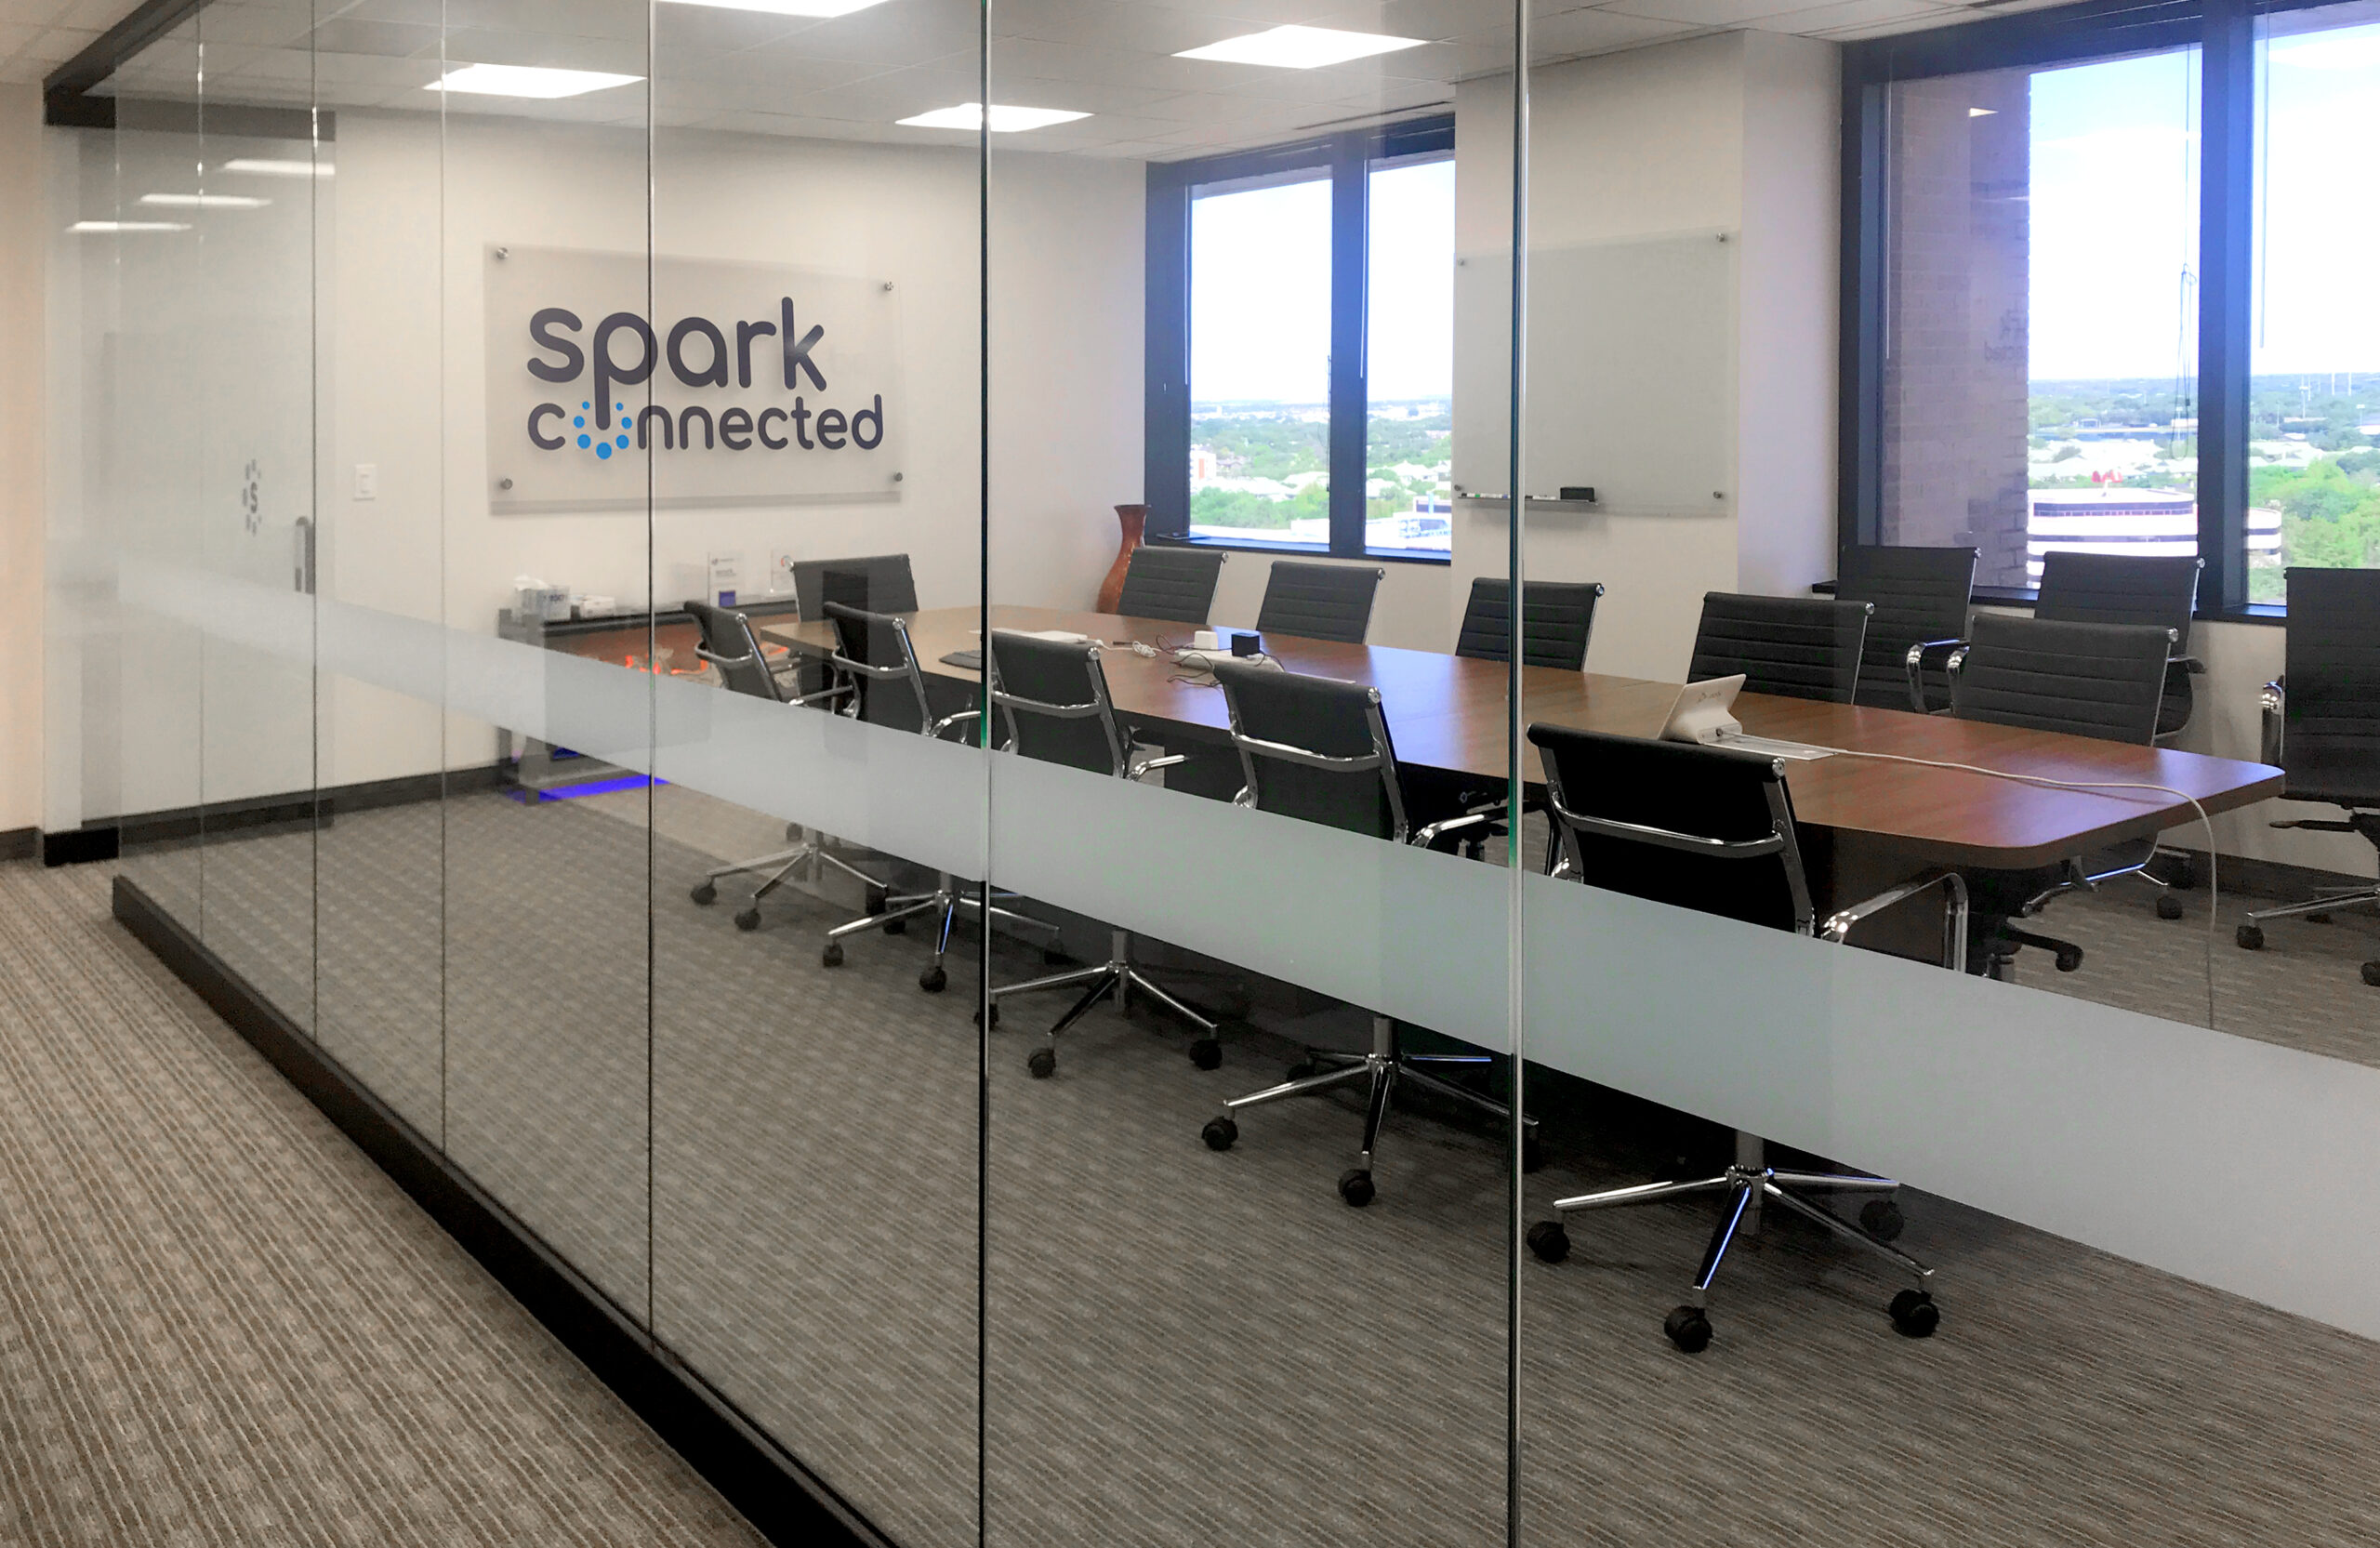 Spark Connected Headquarters Conference Room